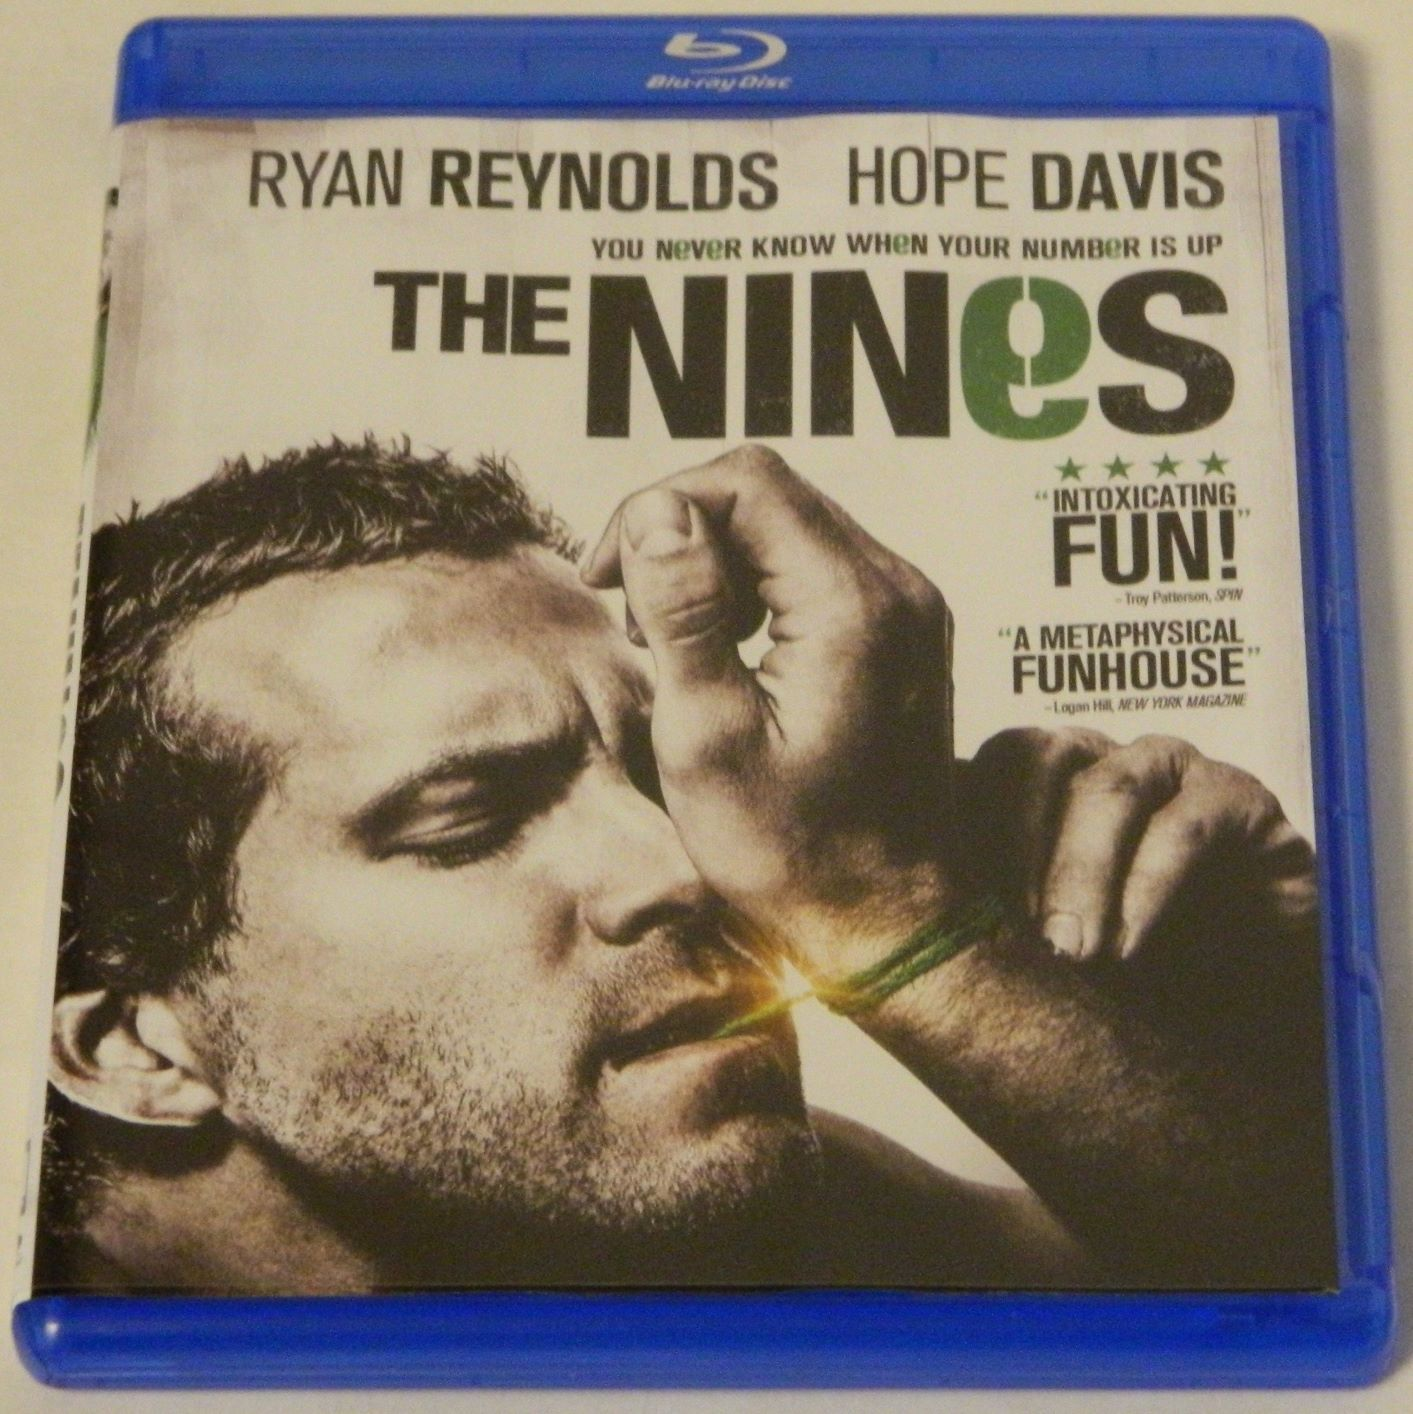 Blu-ray for The Nines